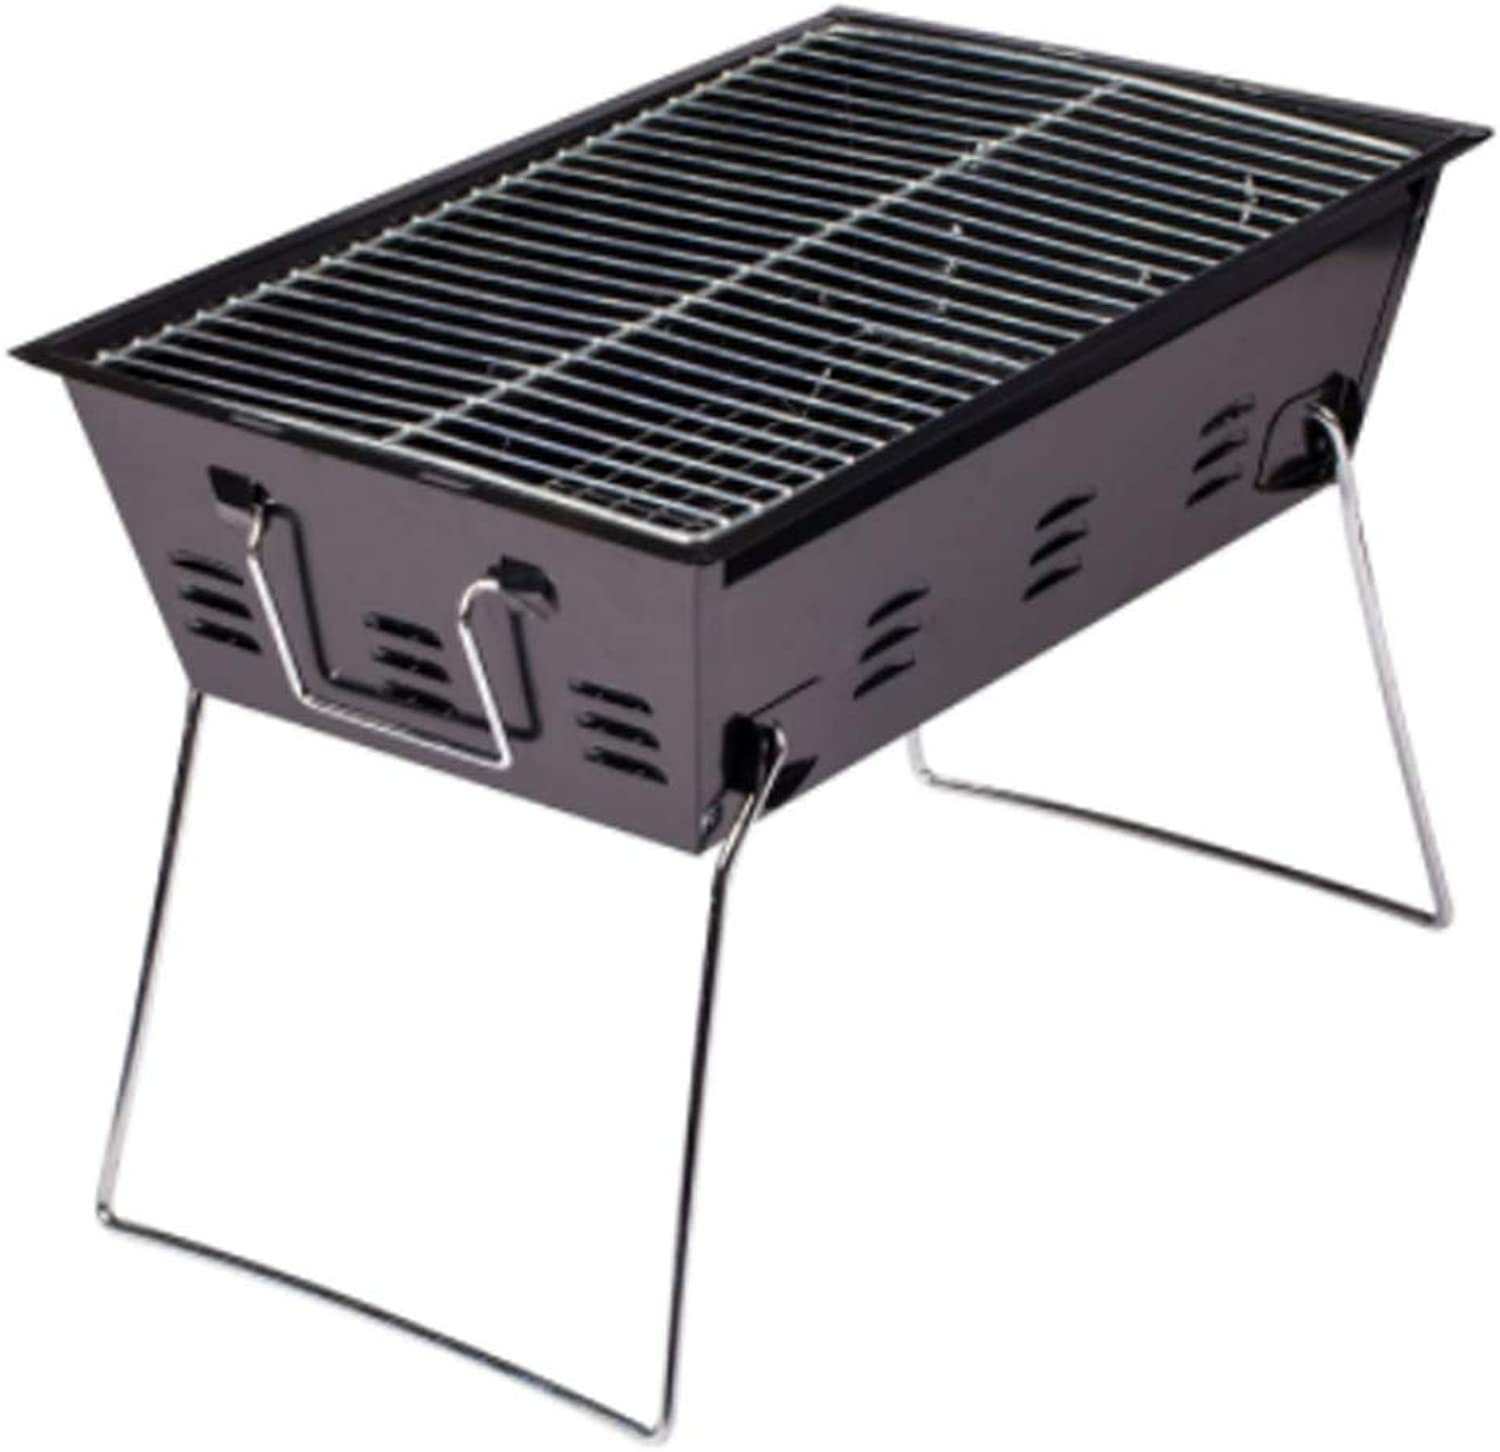 Stainless Steel Grill Folding Convenient Grills with Safety Chrome Plated Baking Net Smoker Barbecue Portable for Outdoor Garden Picnics Brown